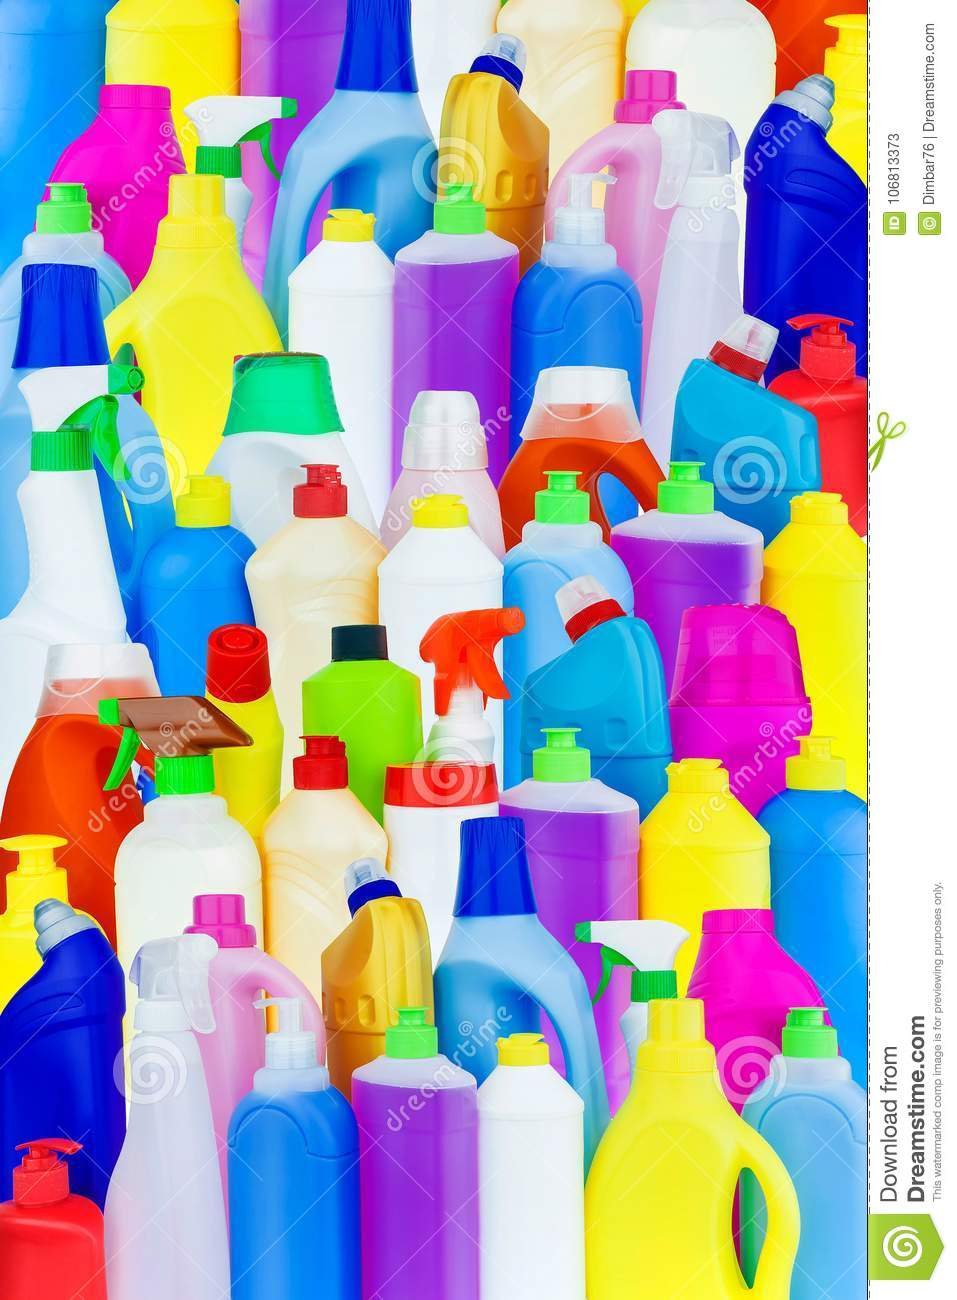 Background of multi-colored bottles with household chemicals